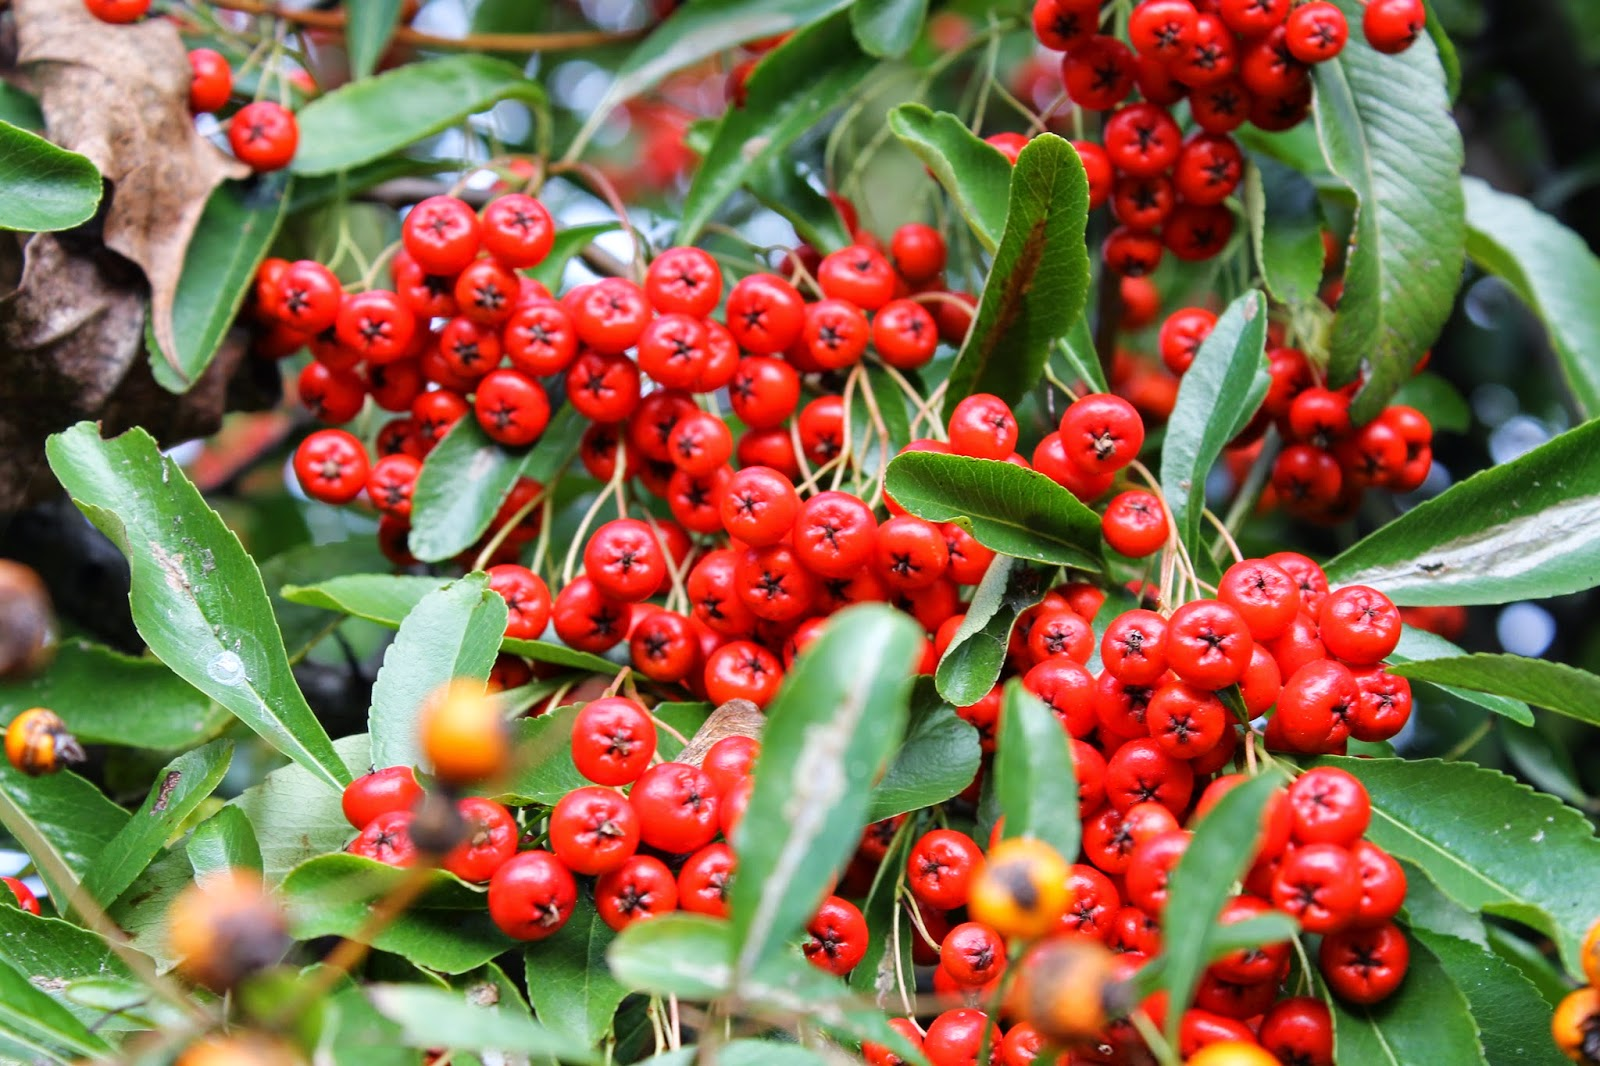 JibberJabberUK: Winter berries